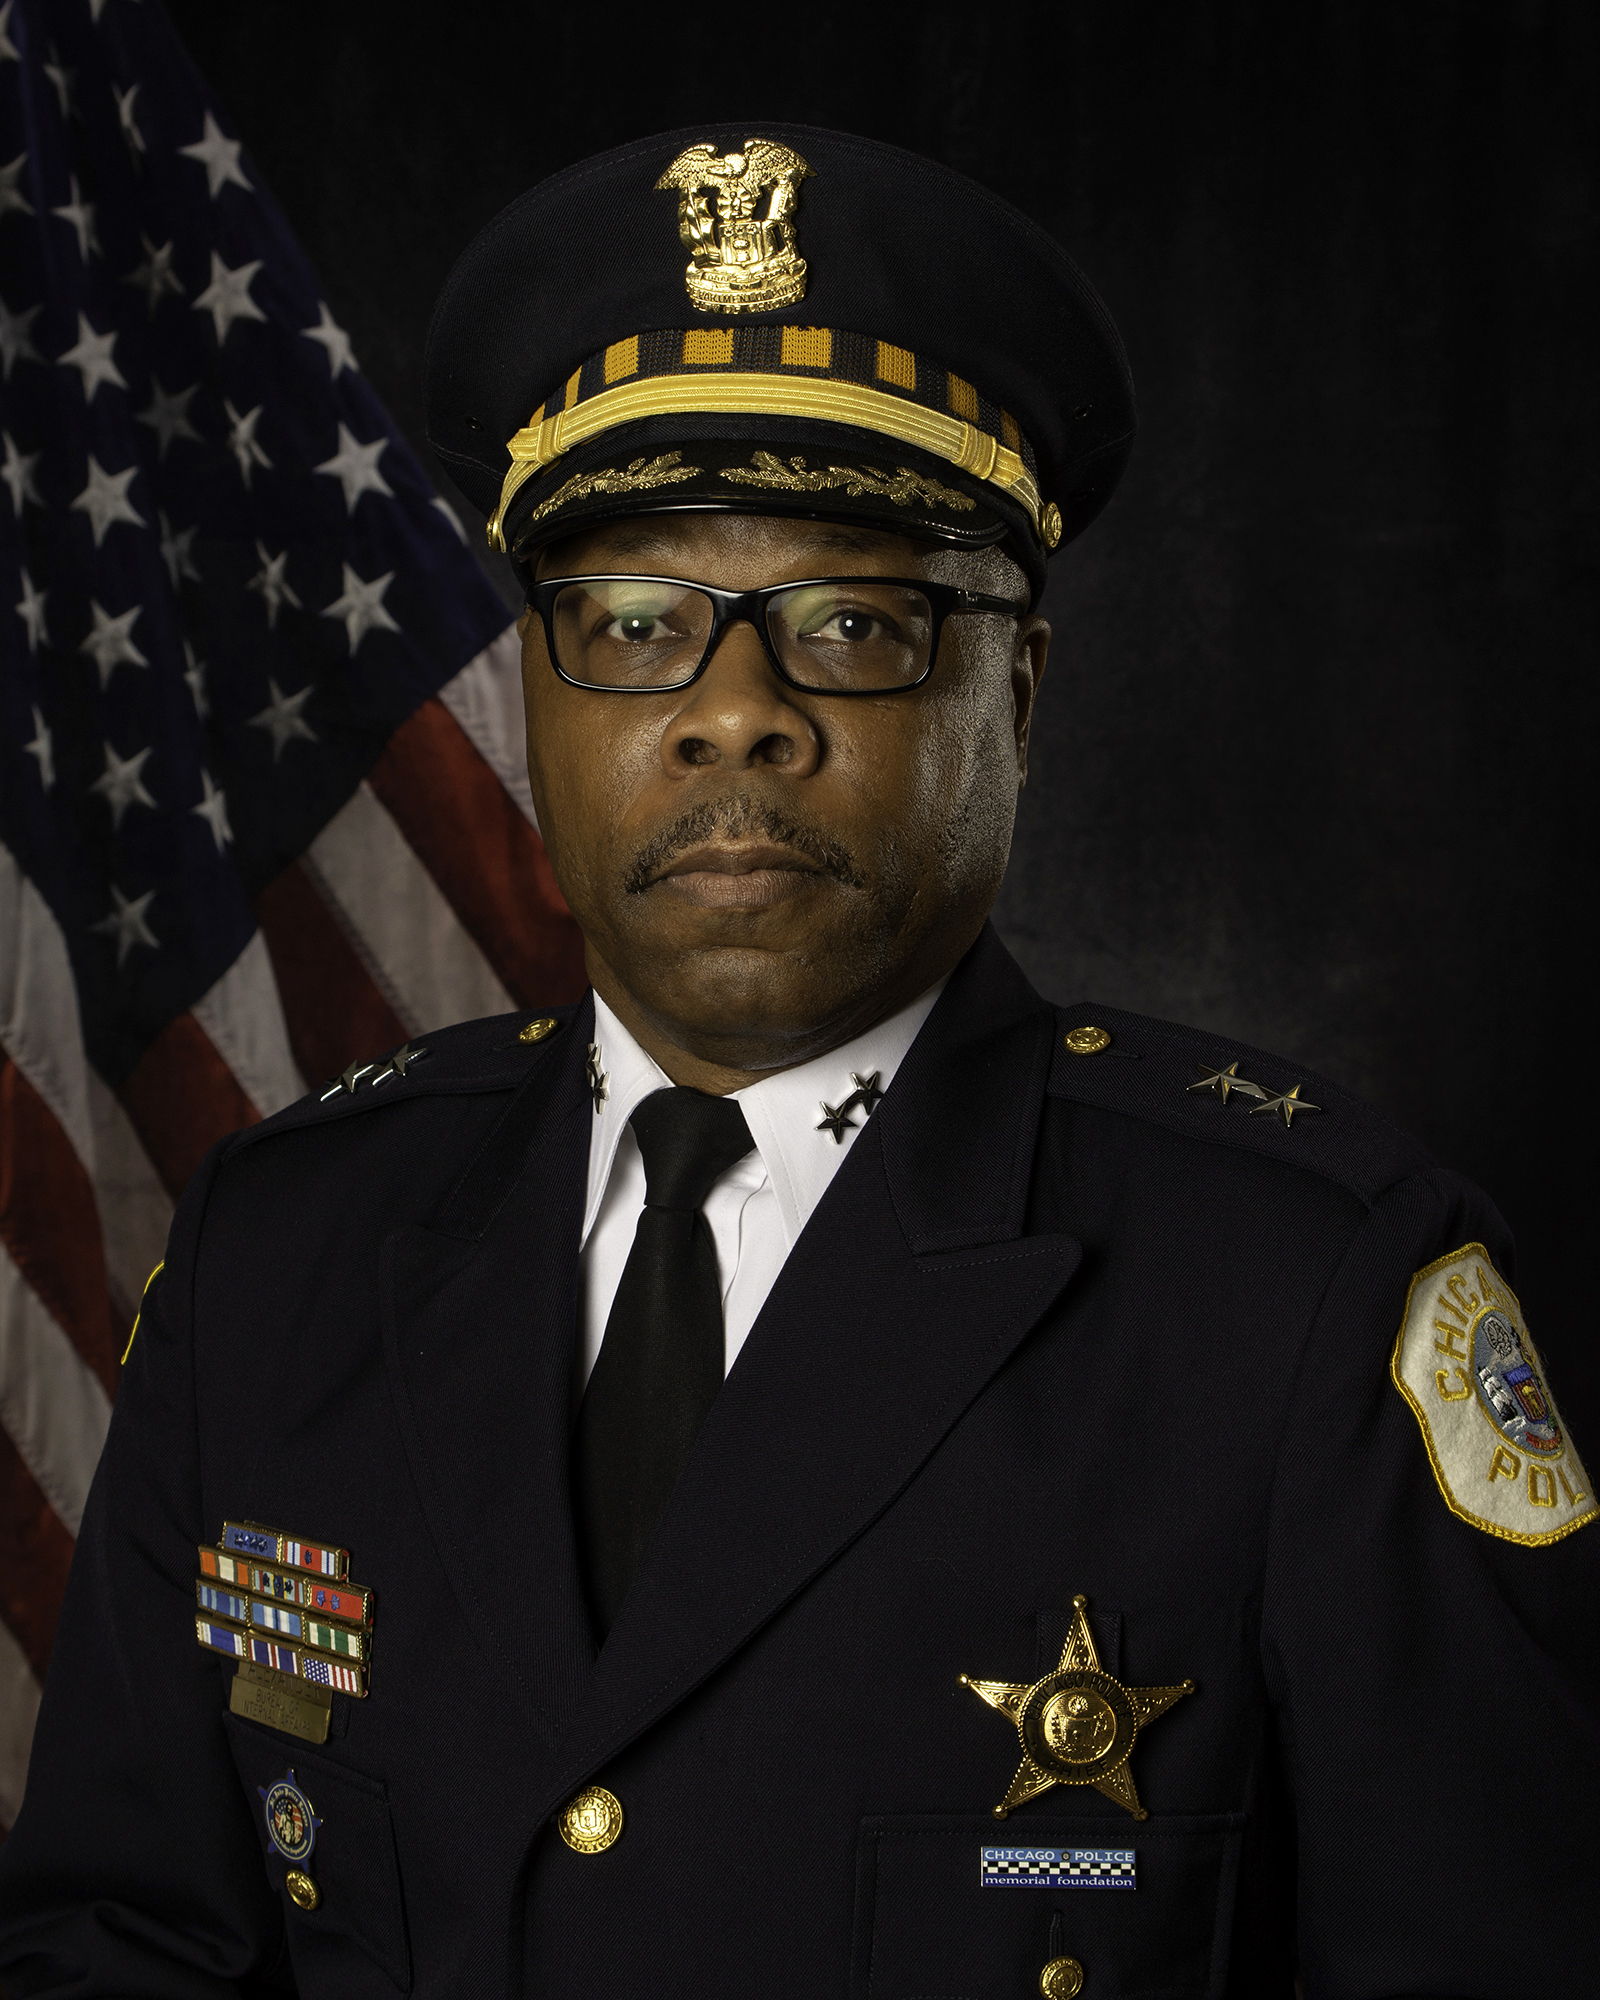 Chief Dana Alexander